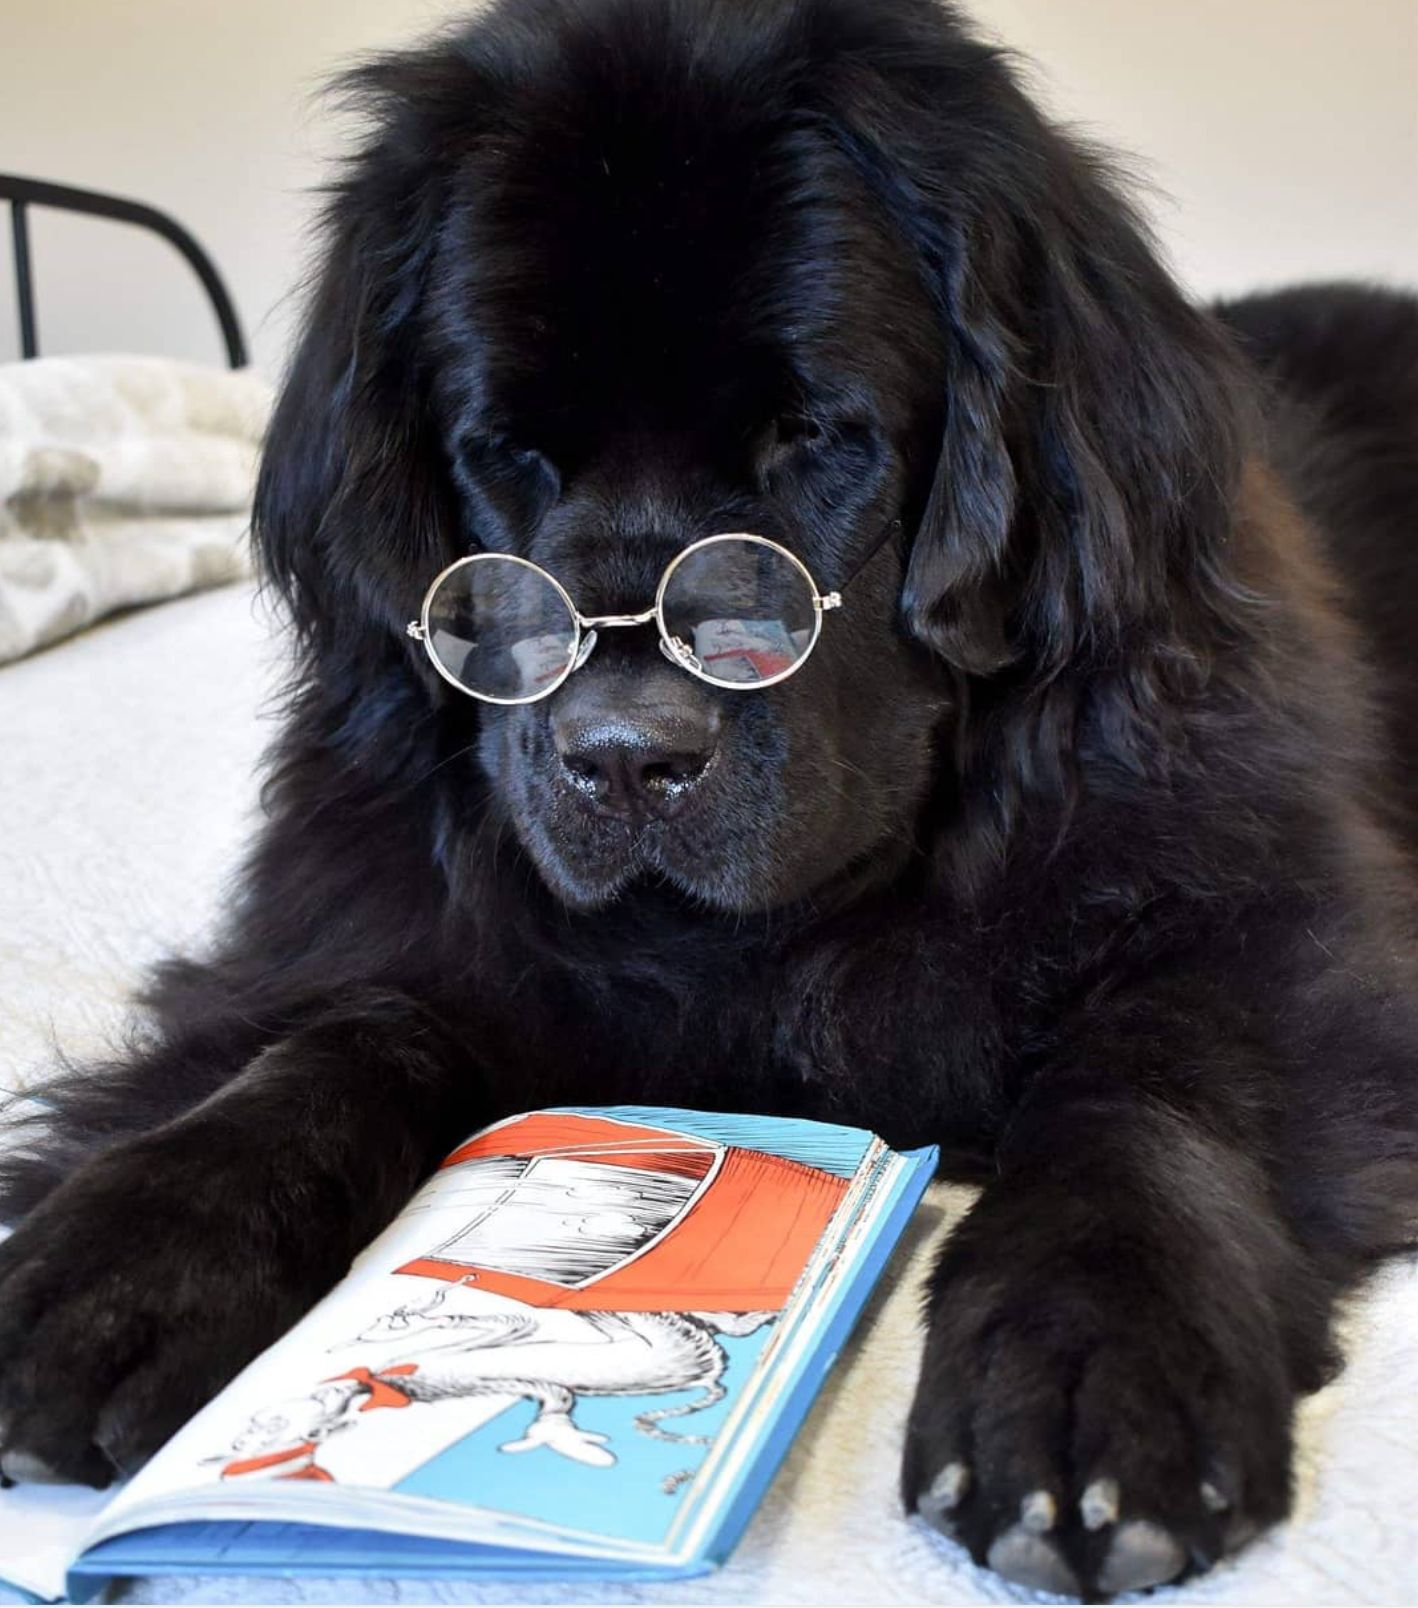 Pin By Lauren Conrad On Newfoundland Dogs Newfoundland Dog Newfoundland Puppies Dogs